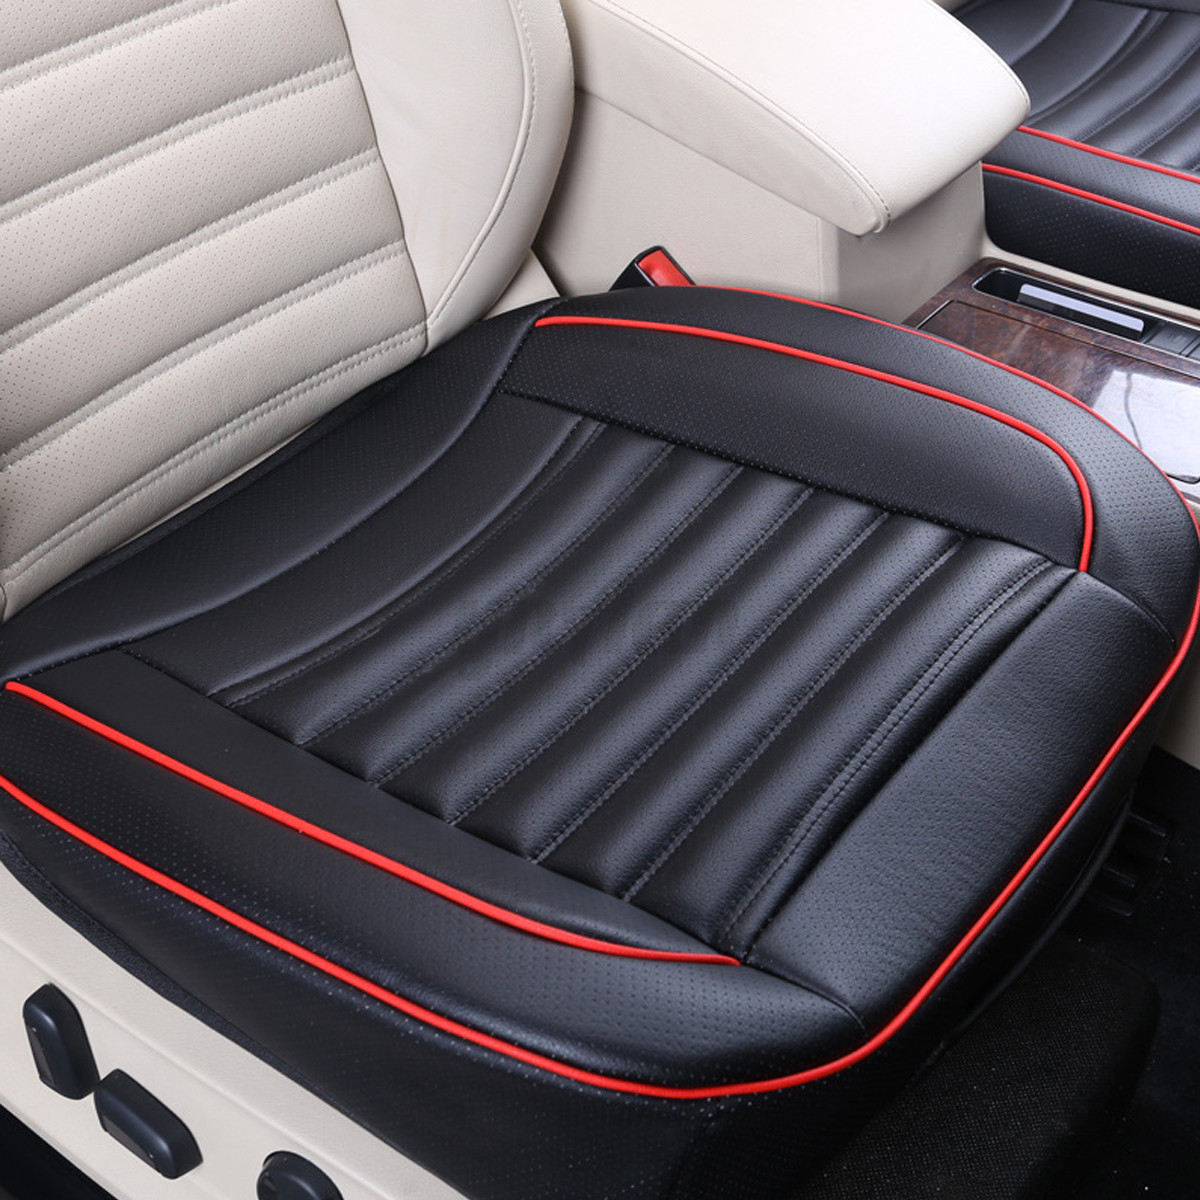 Noir pu cuir voiture auto si ge coussin housse cover for Housse voiture cuir